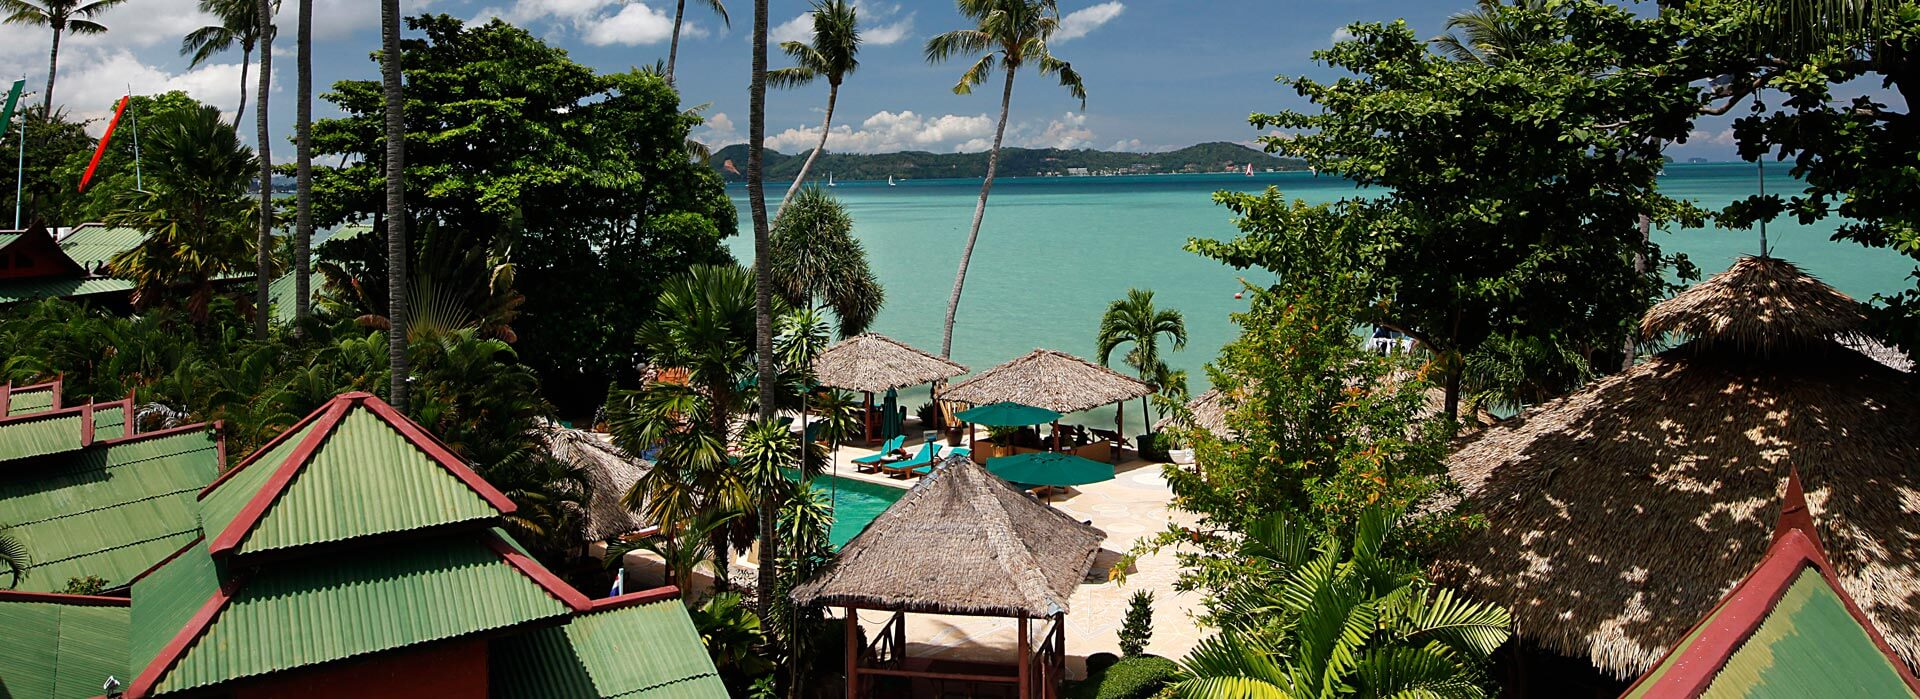 Friendship Beach Resort & Spa Hotel in Rawai Phuket